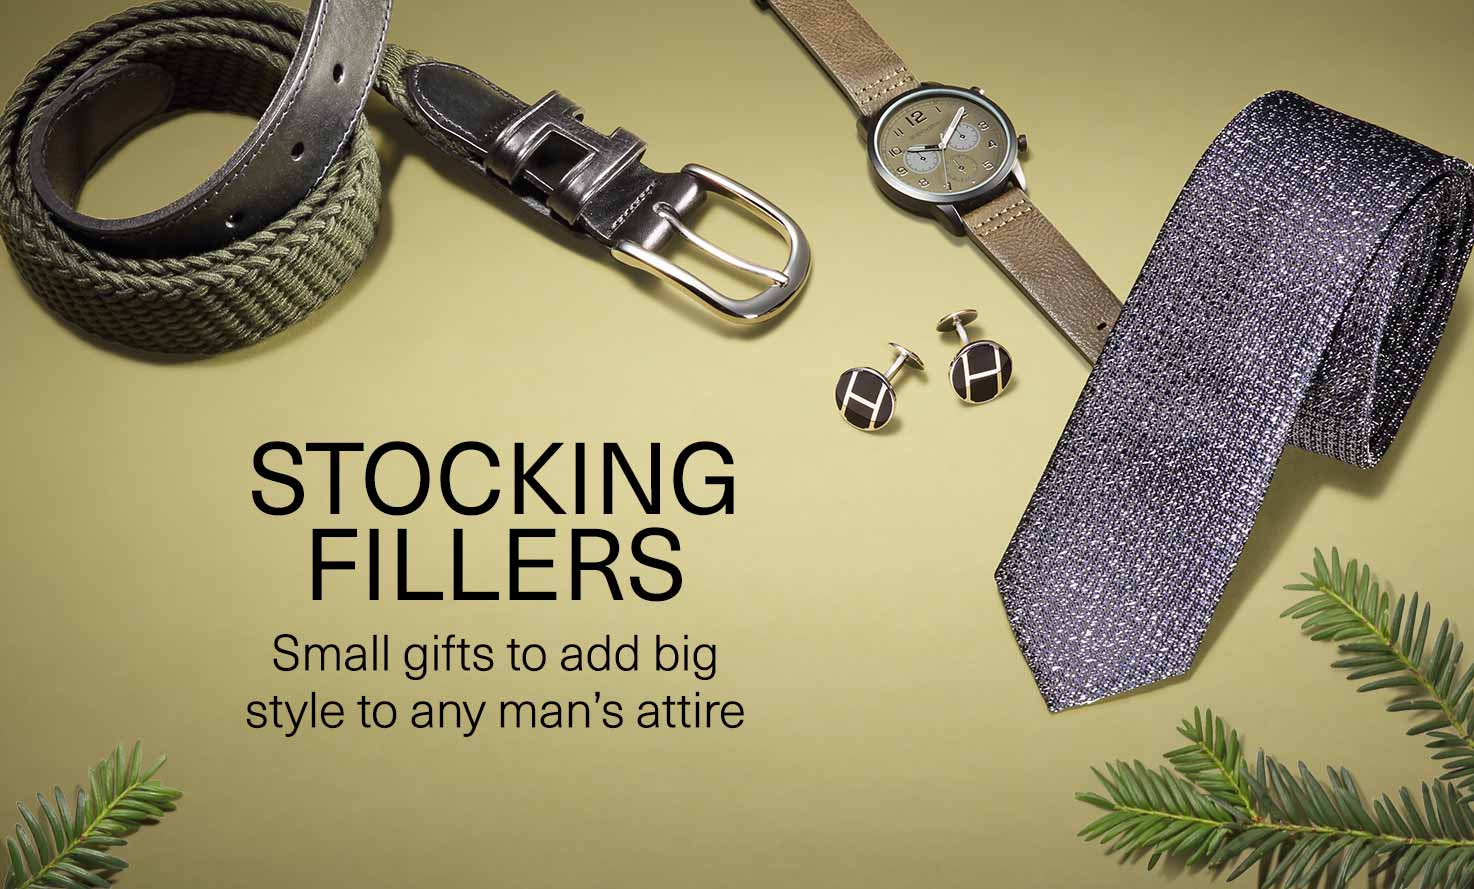 Stocking fillers: Small gifts to add big style to any man's attire